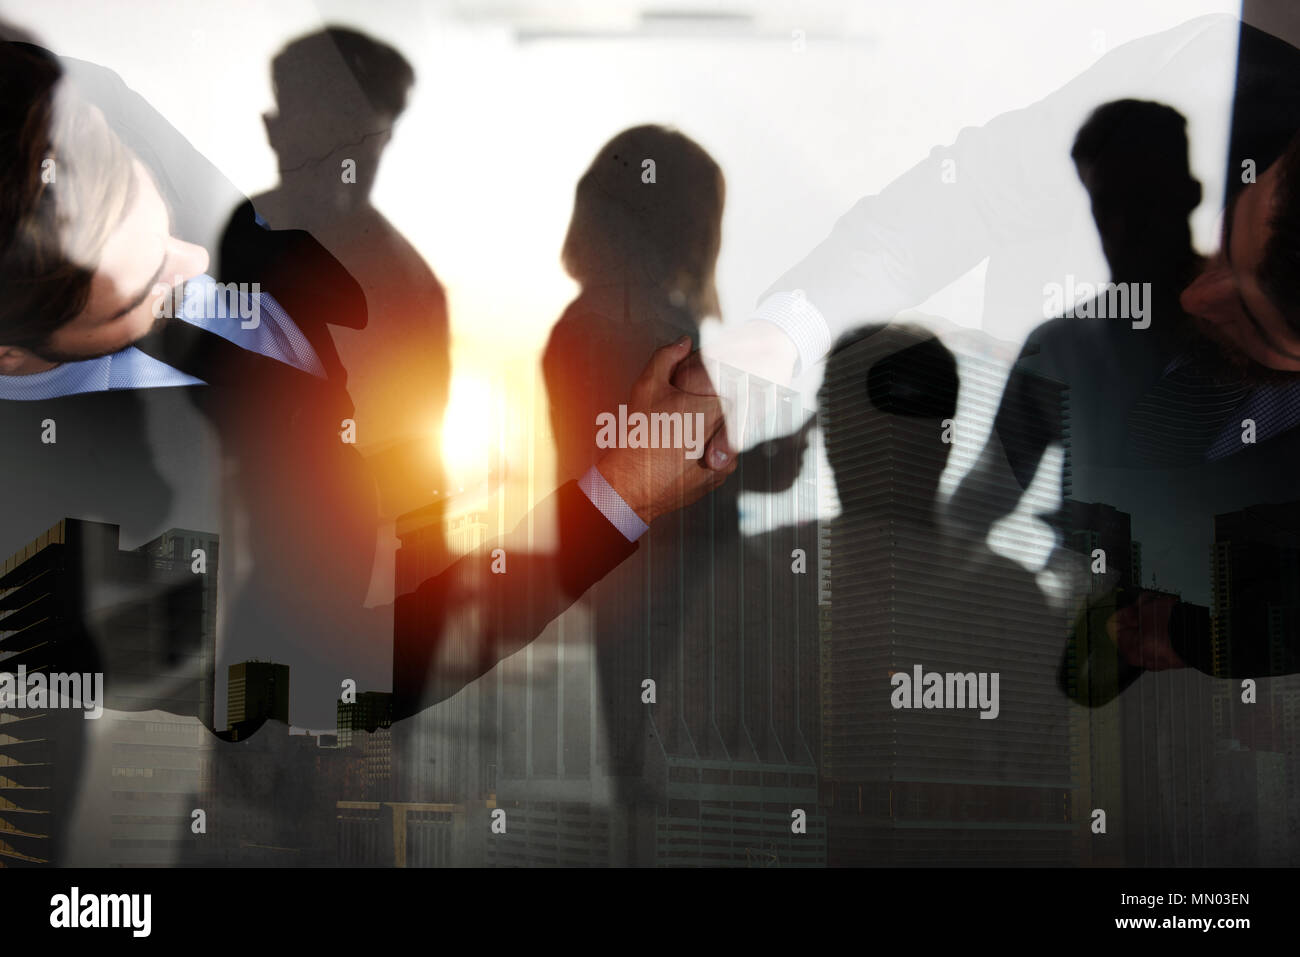 Handshaking business Person im Büro. Konzept der Teamarbeit und Partnerschaft. Double Exposure Stockbild